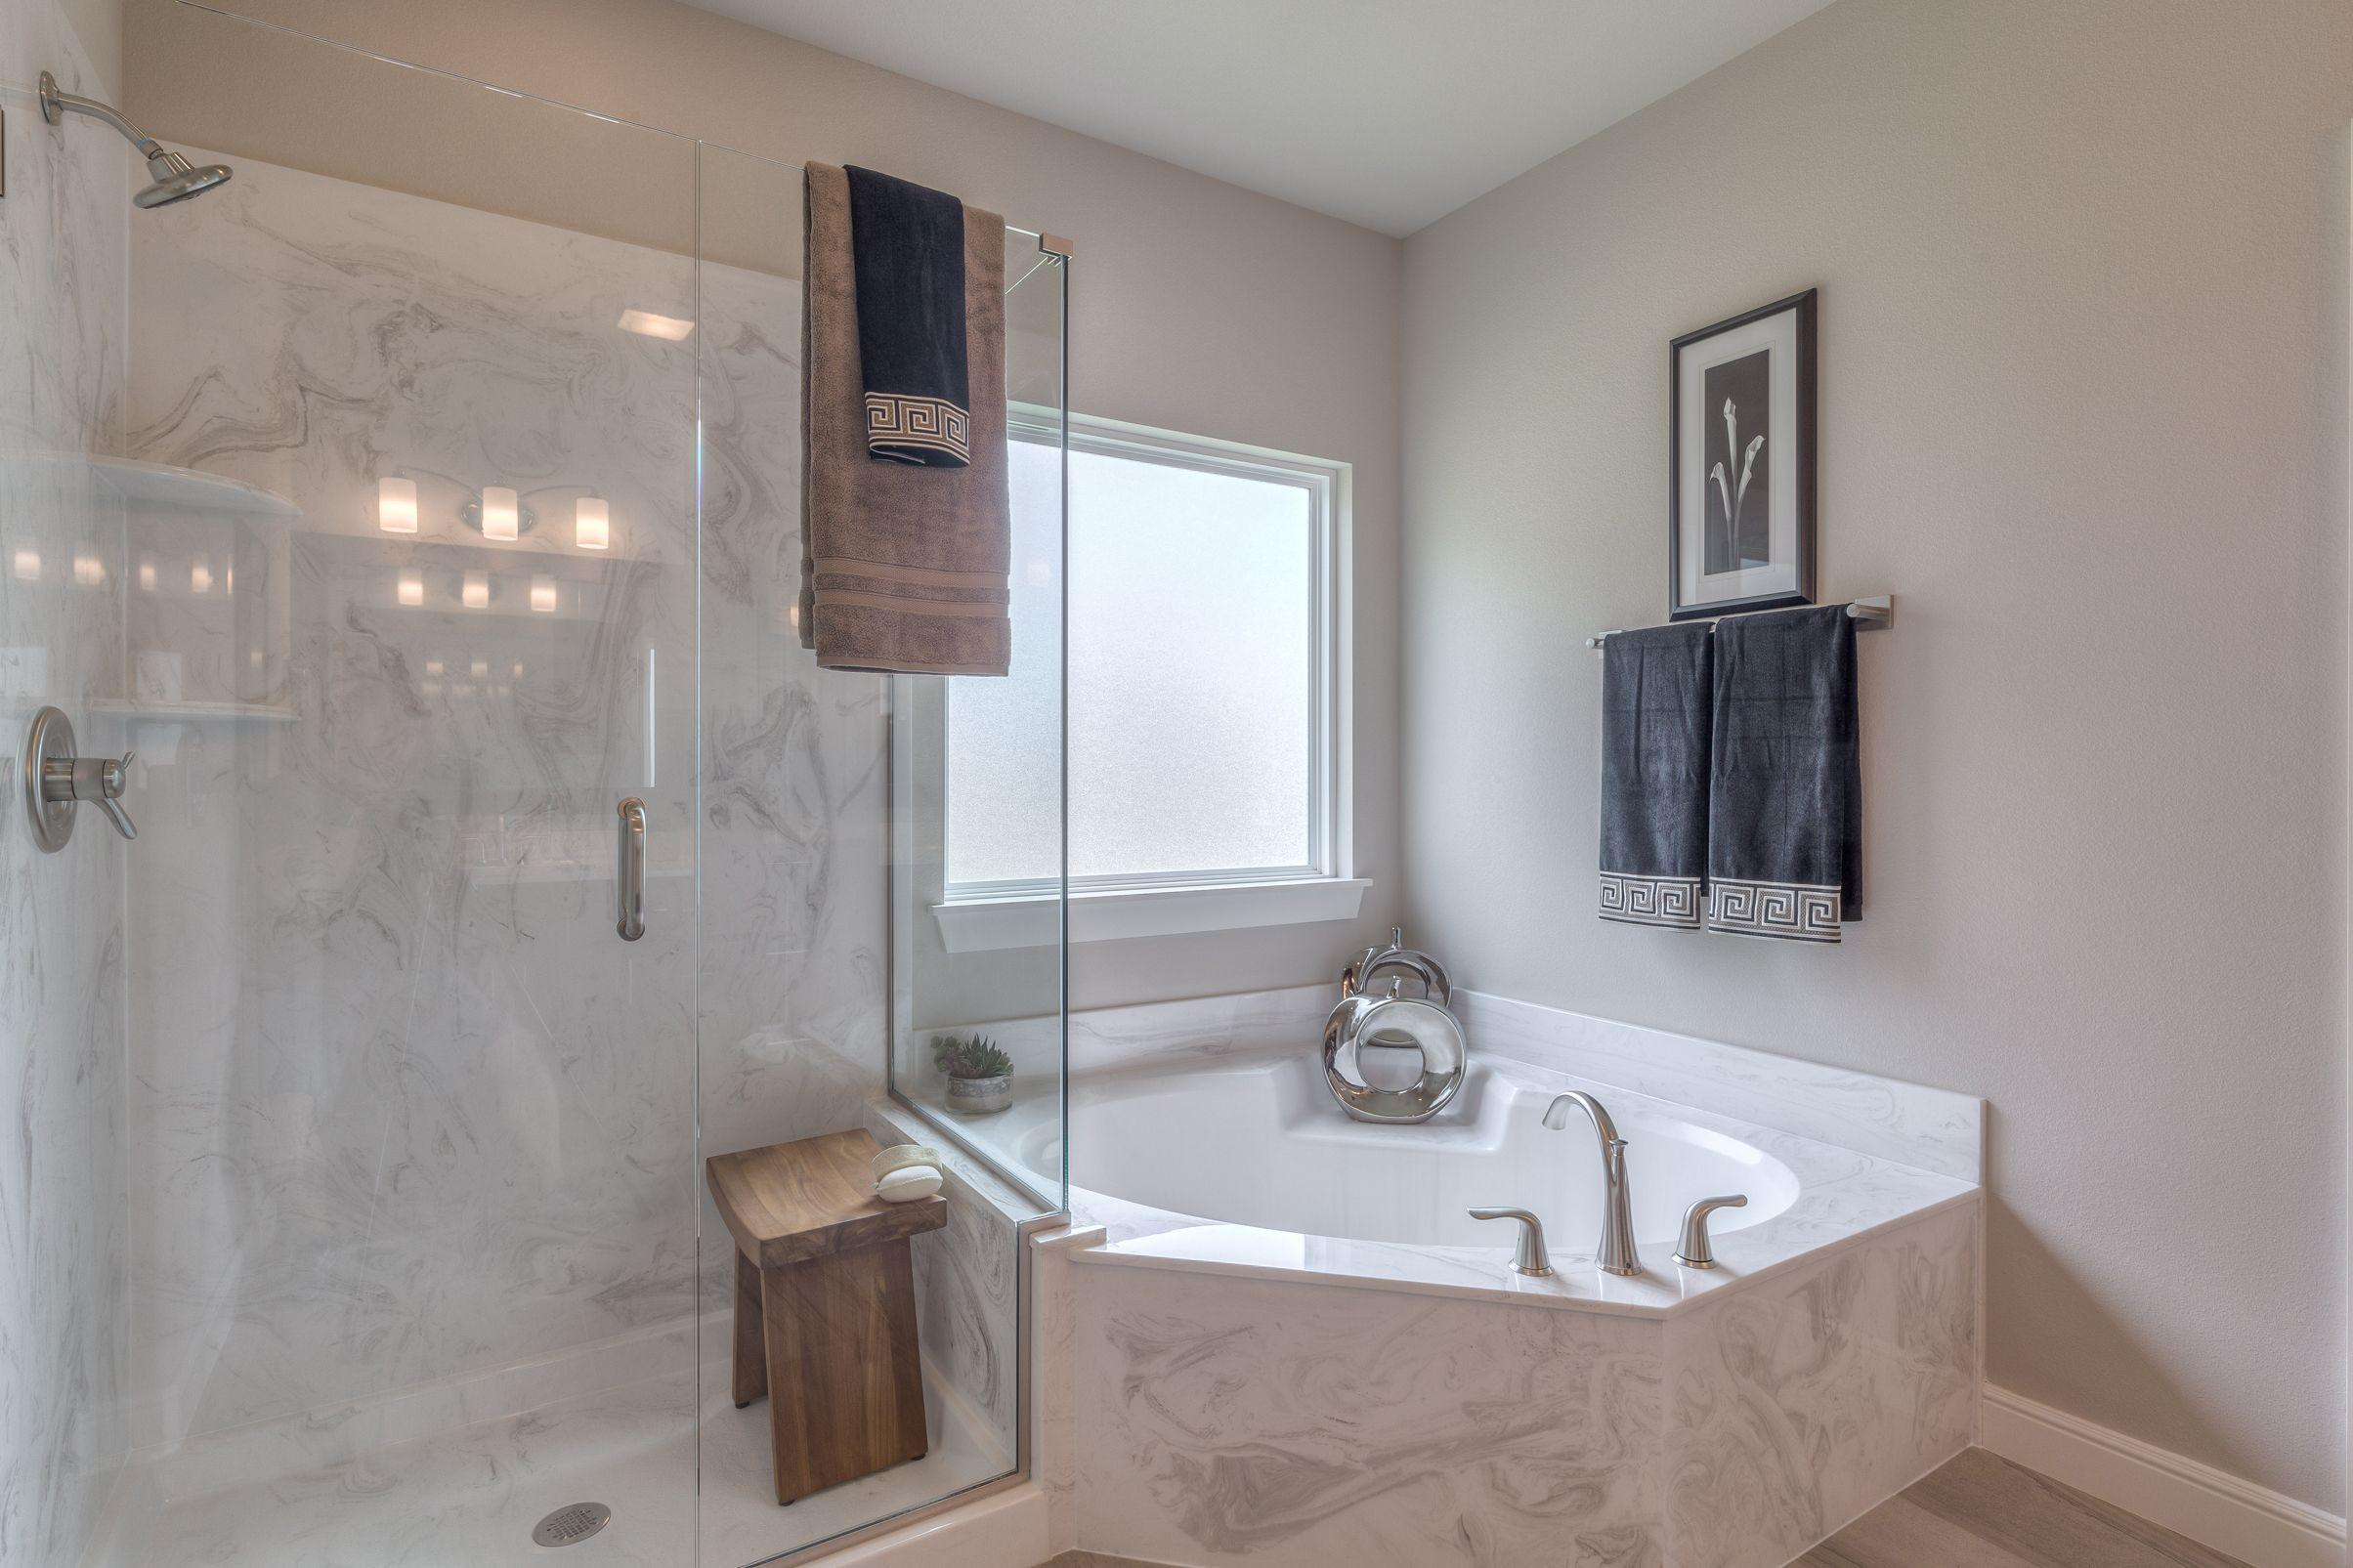 Bathroom featured in the Conner II Exp By Concept Builders, Inc in Tulsa, OK